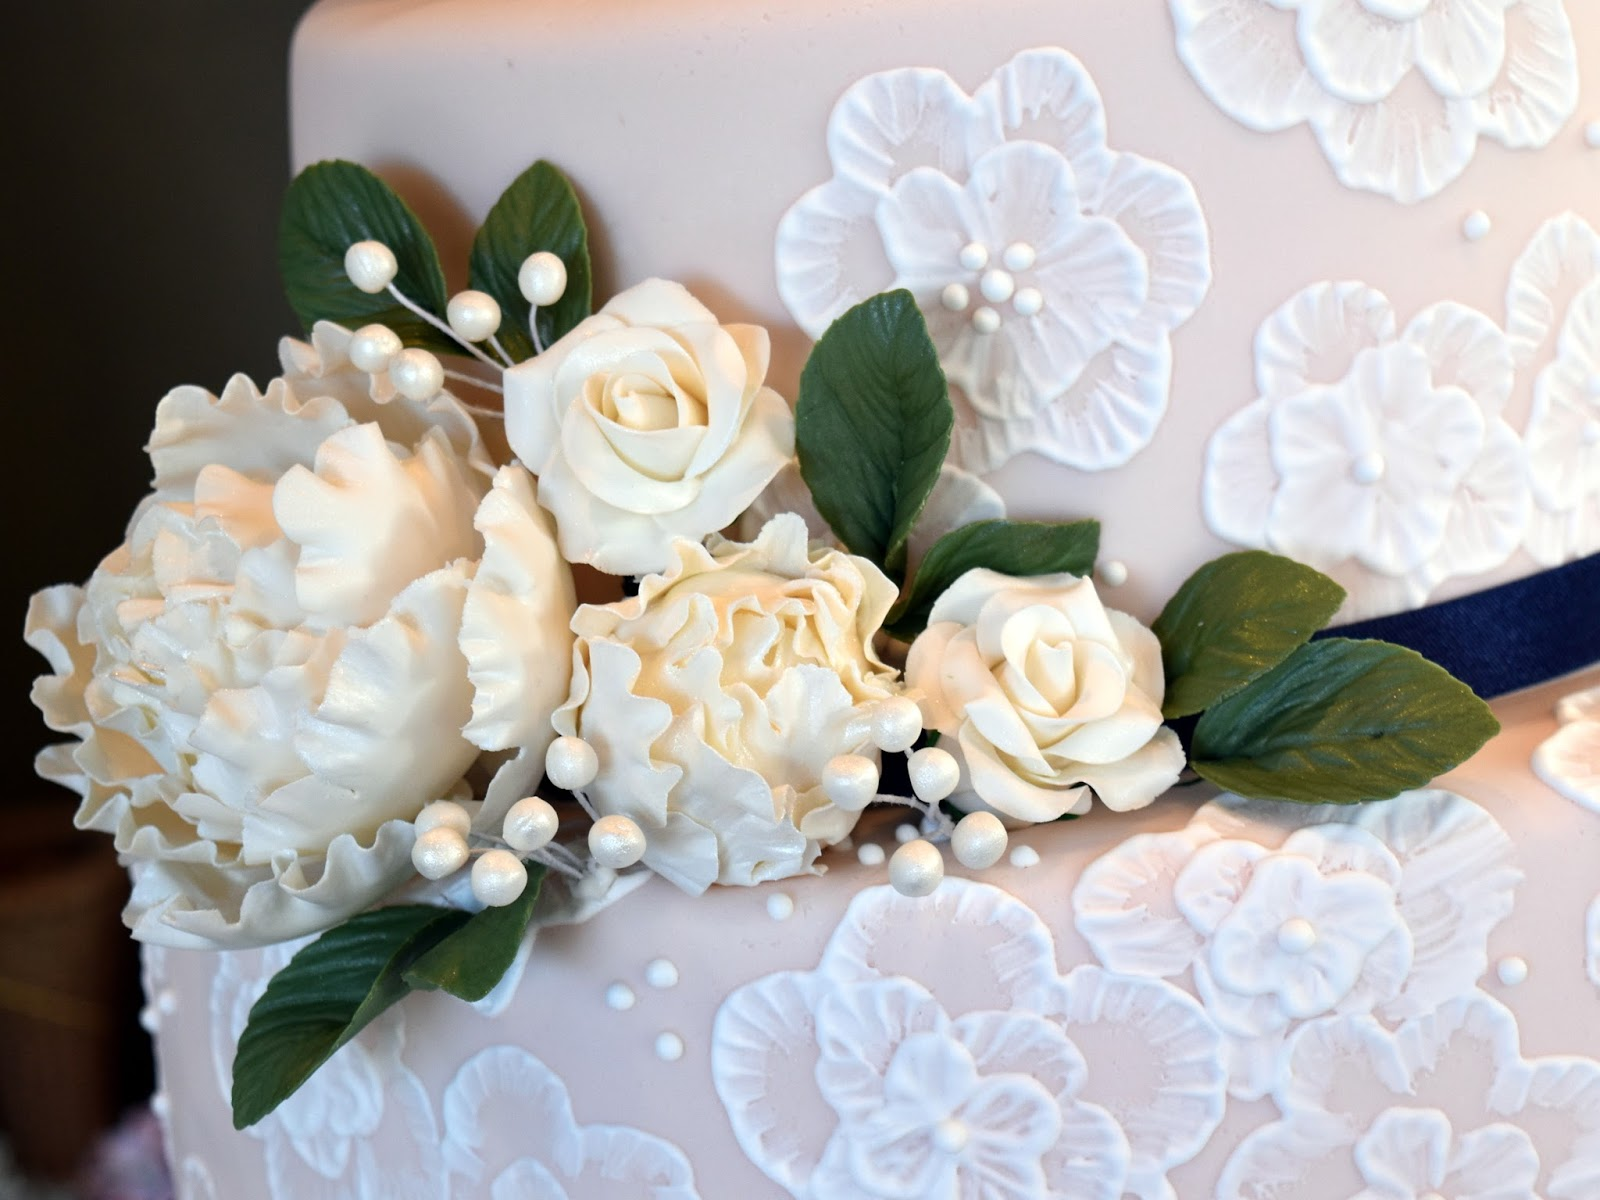 The Wedding Cake Project July 2017